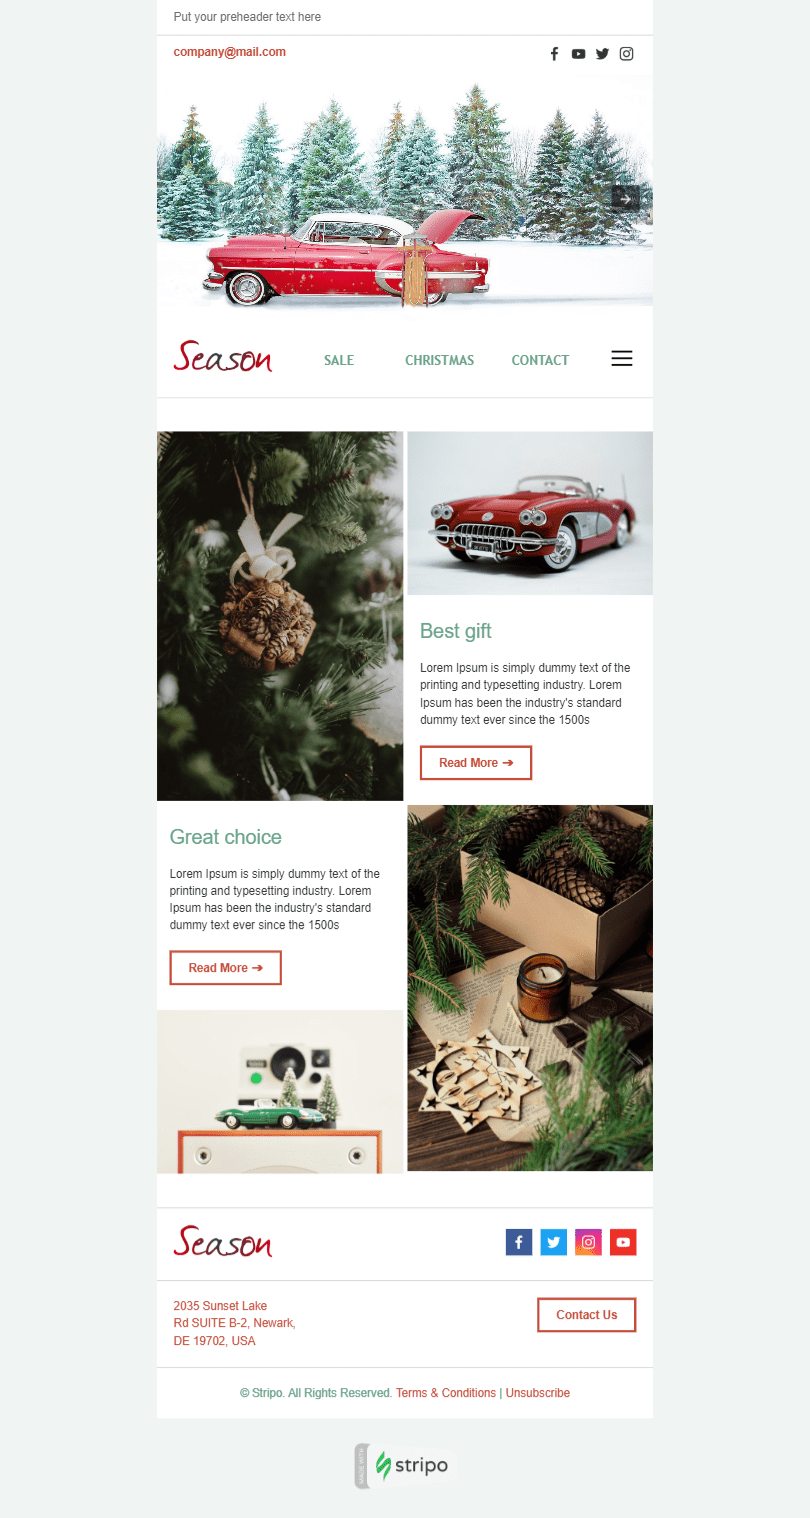 Сhristmas Email Template «Holiday Season» for Gifts & Flowers industry desktop view